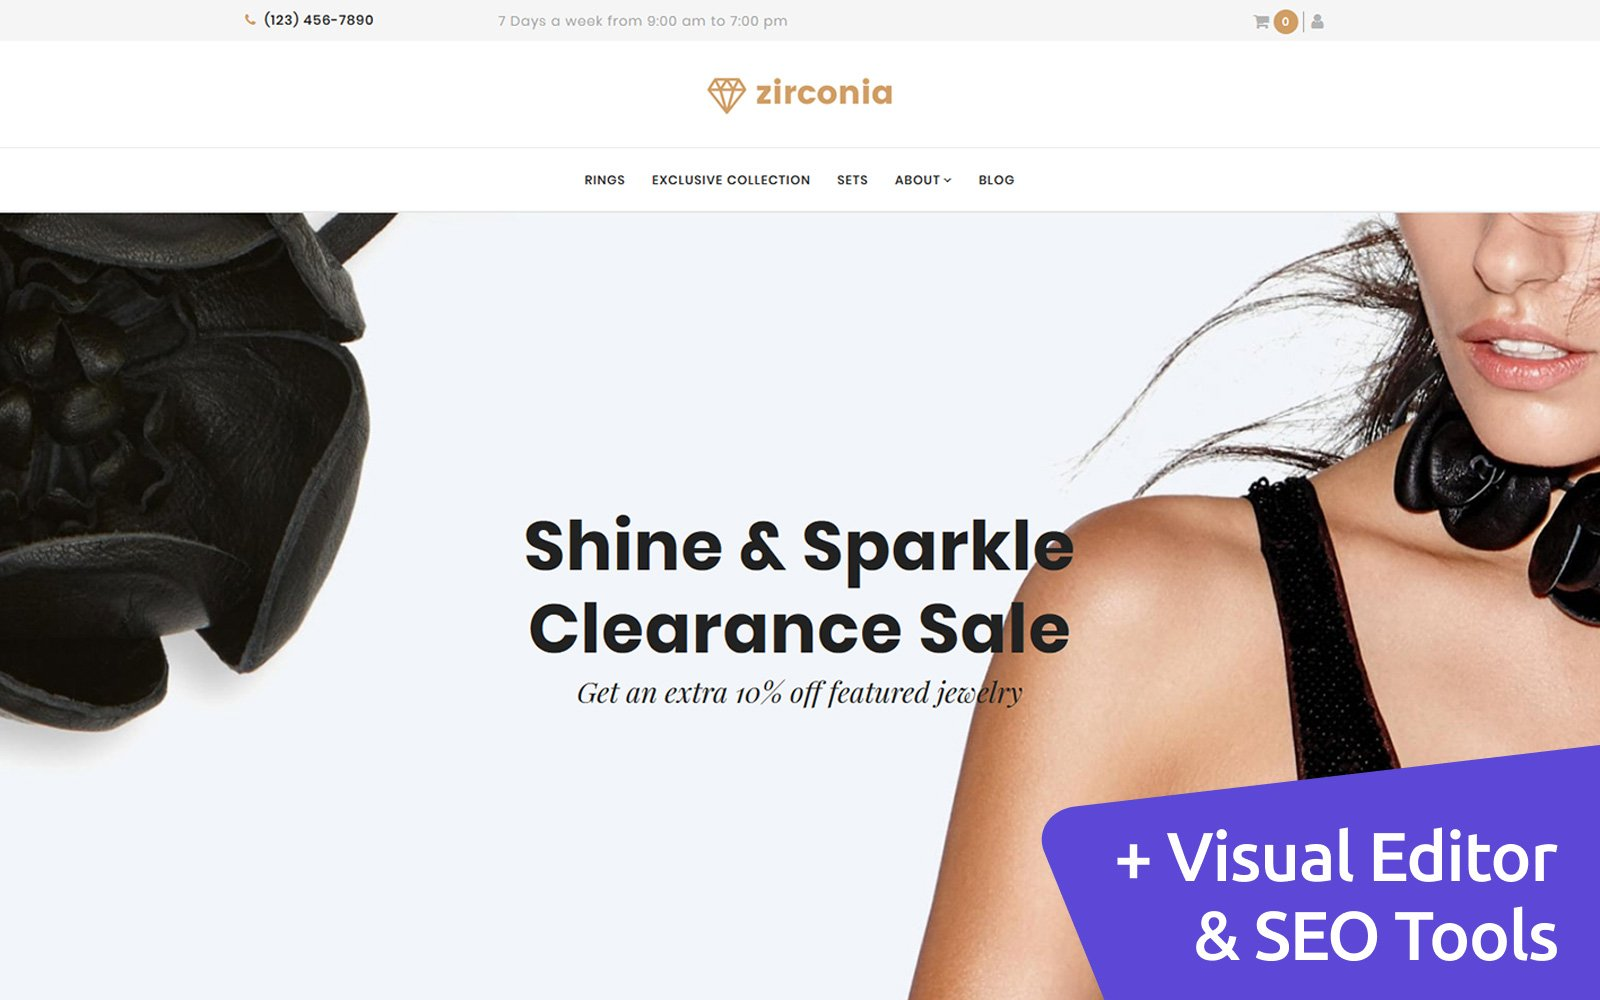 Zirconia - Jewelry & Accessories Store MotoCMS Ecommerce Template